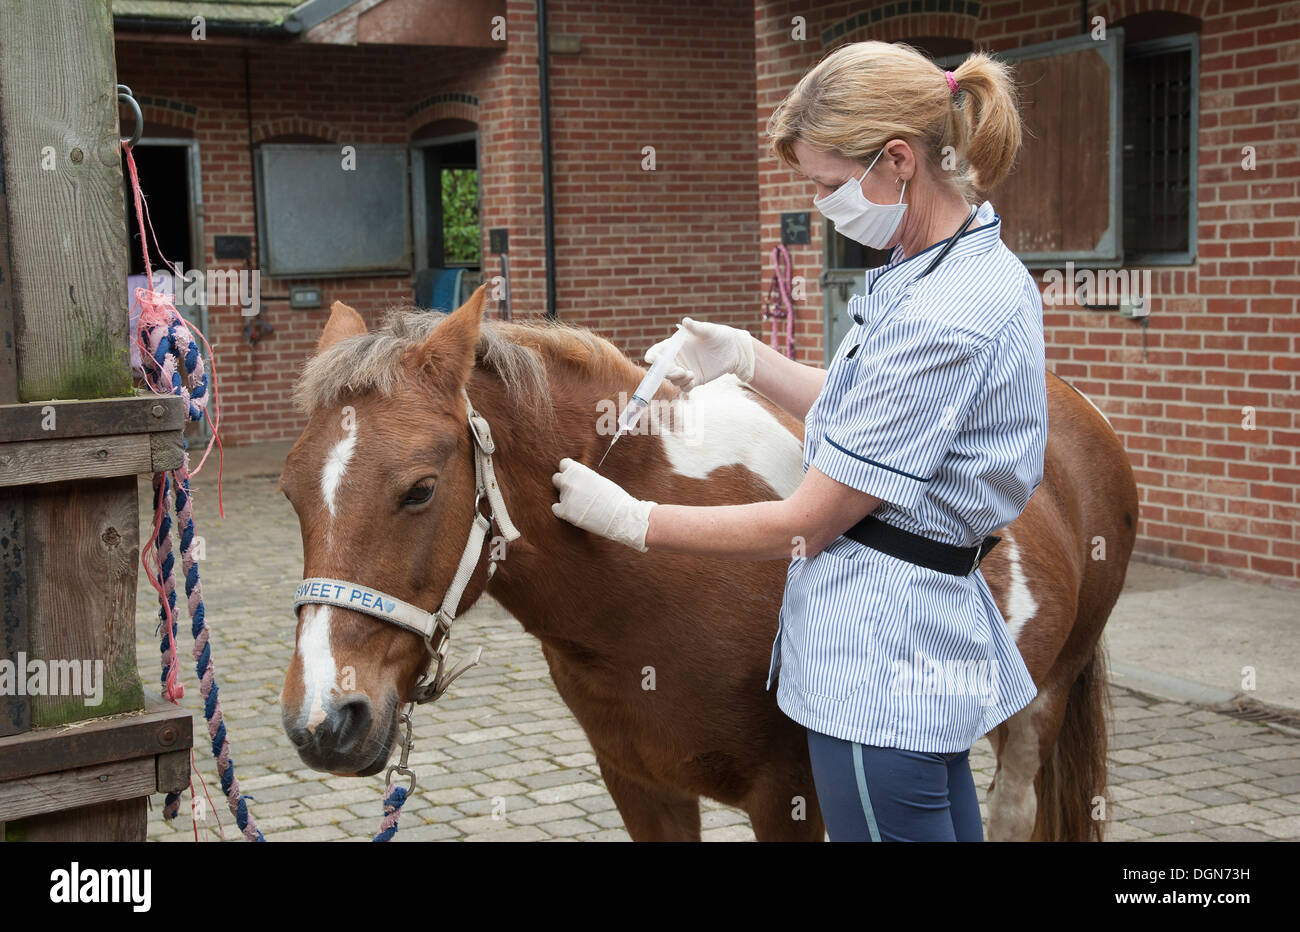 Veterinary nurse treating a Skewball pony Injecting with a large syringe - Stock Image